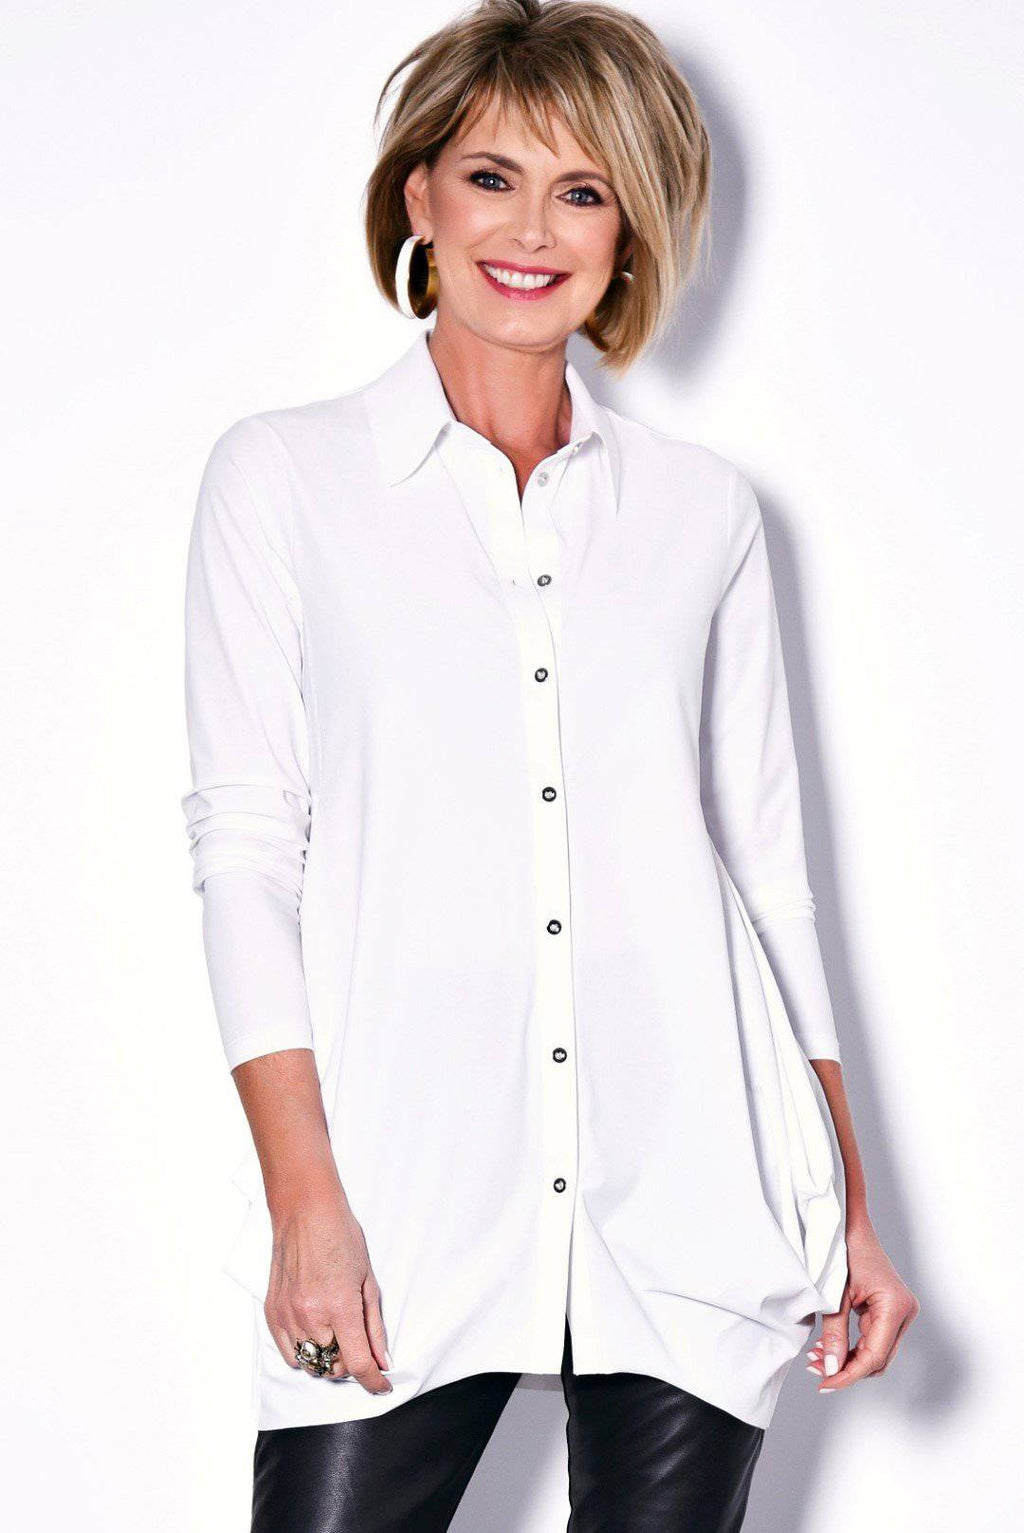 PAULA RYAN Hitched Front Shirt - Microjersey - Magpie Style